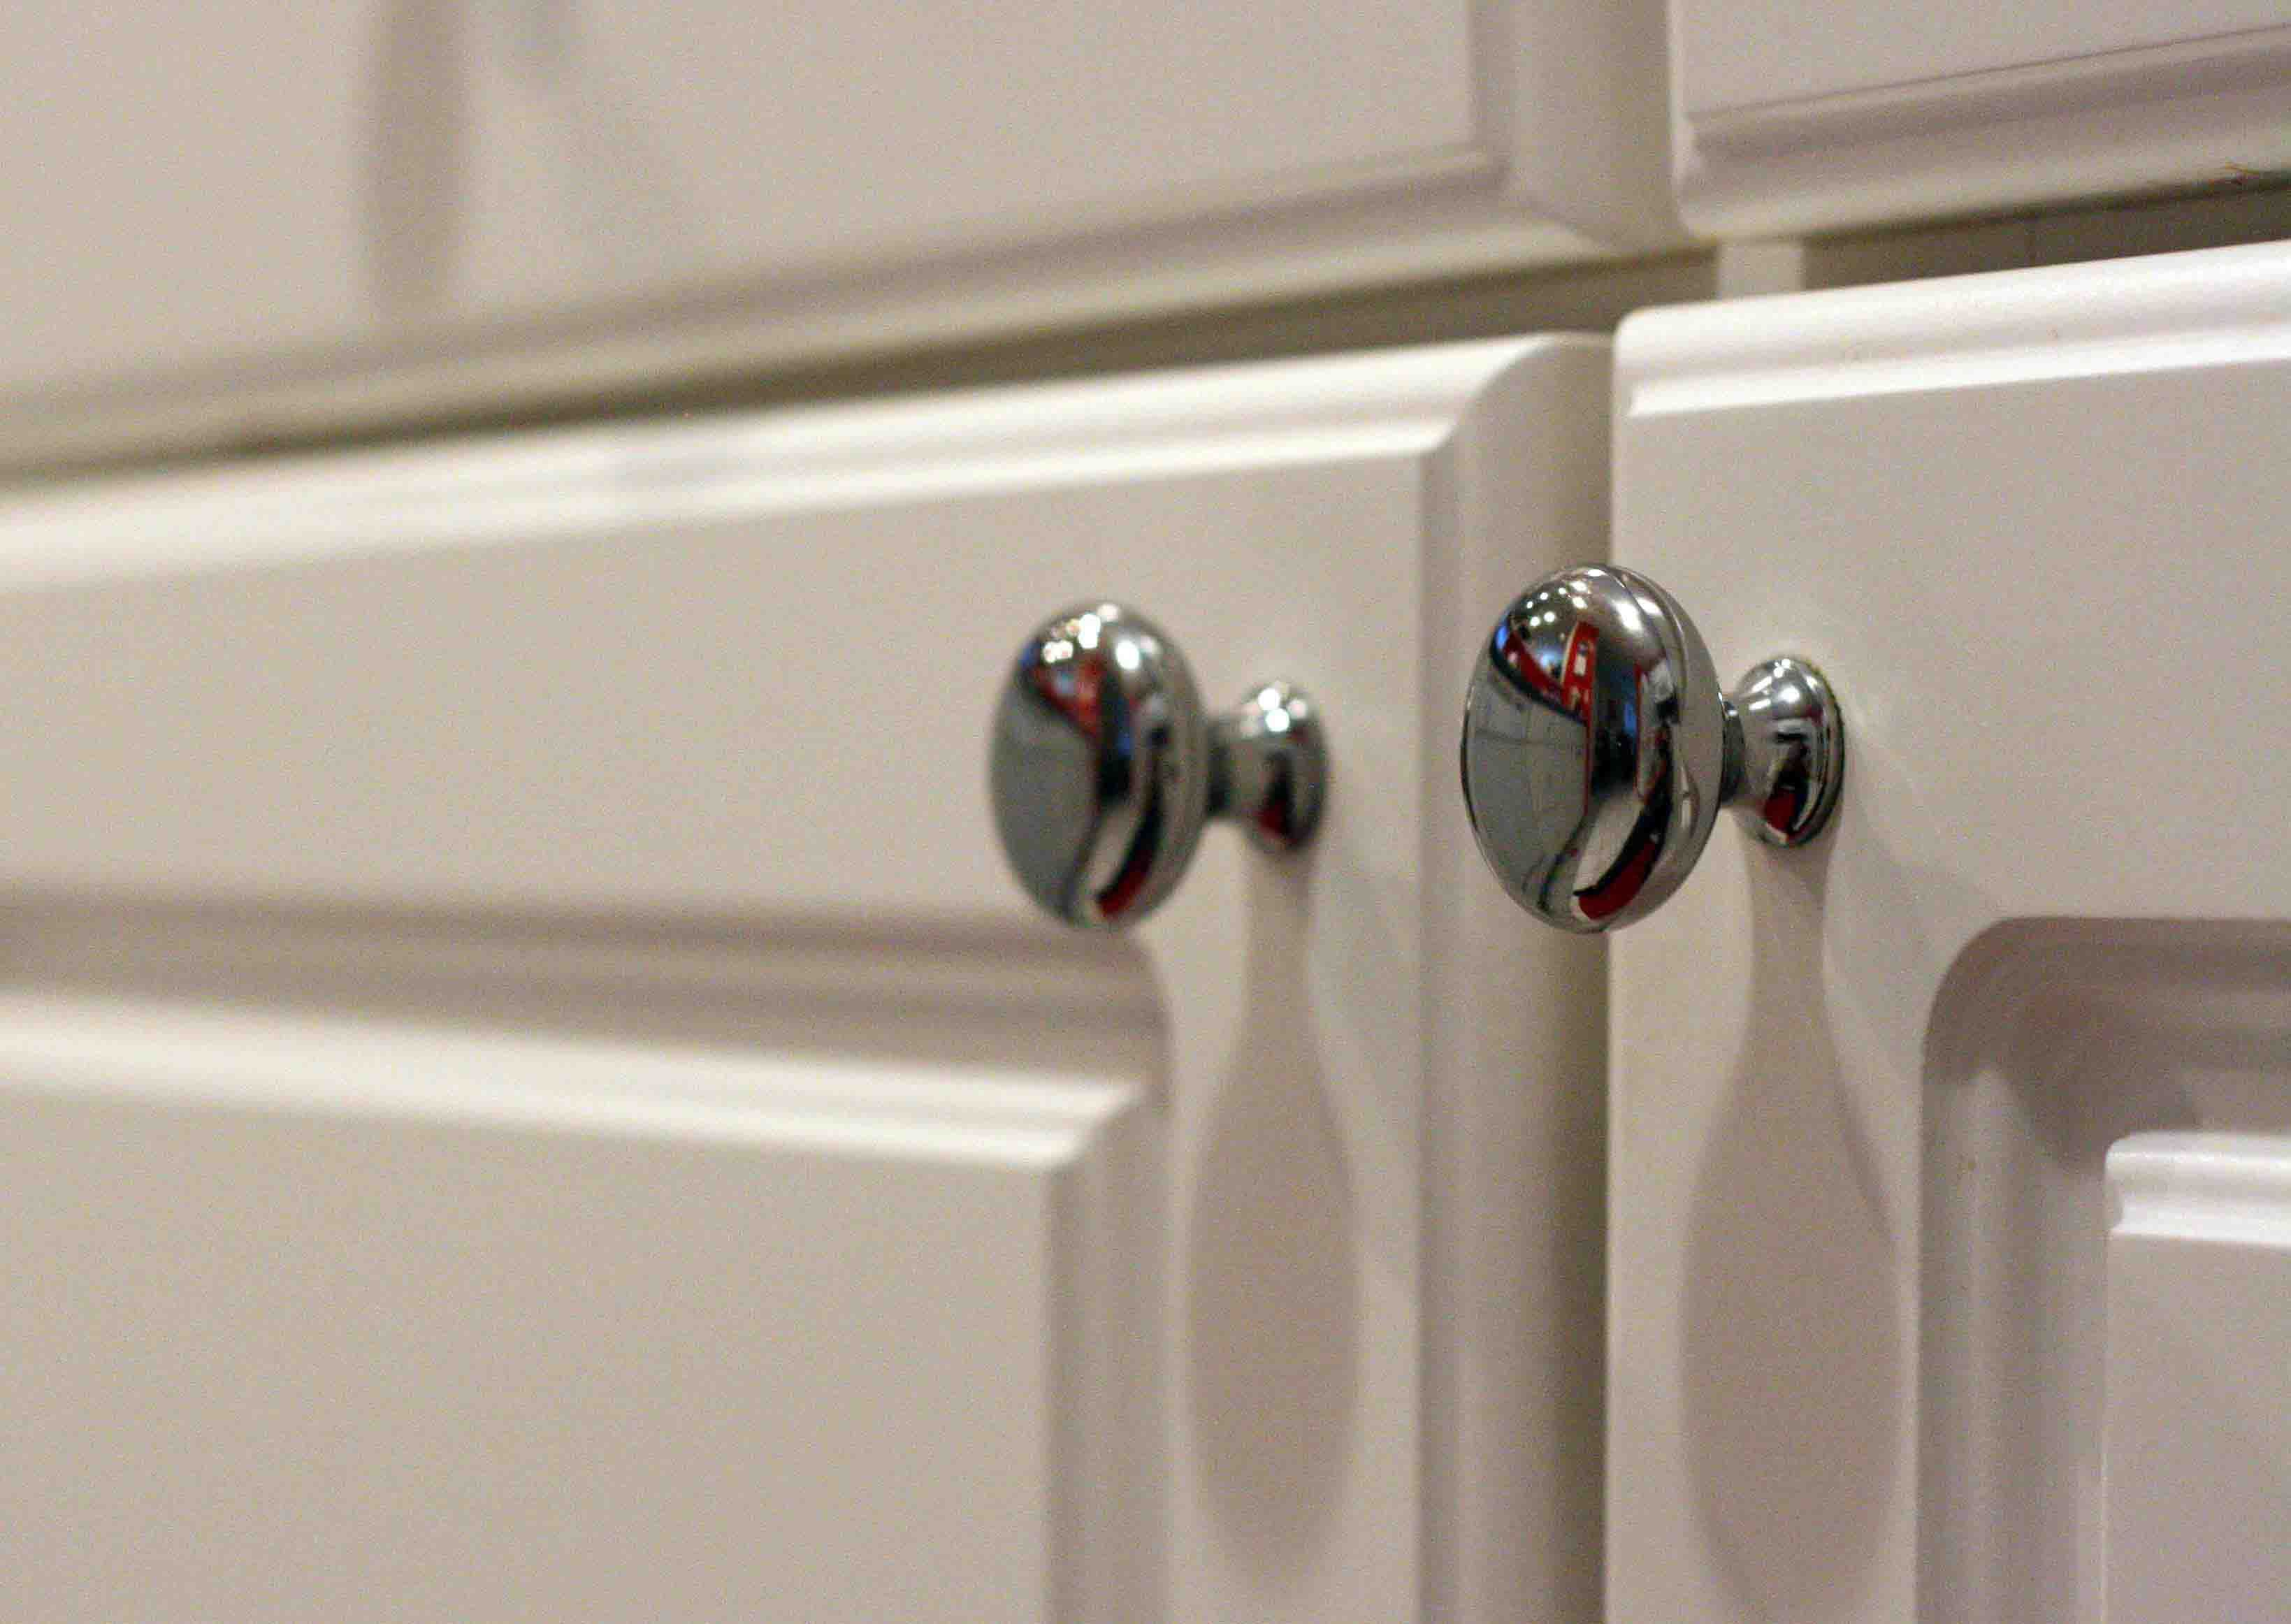 cabinet doors handles and knobs photo - 4